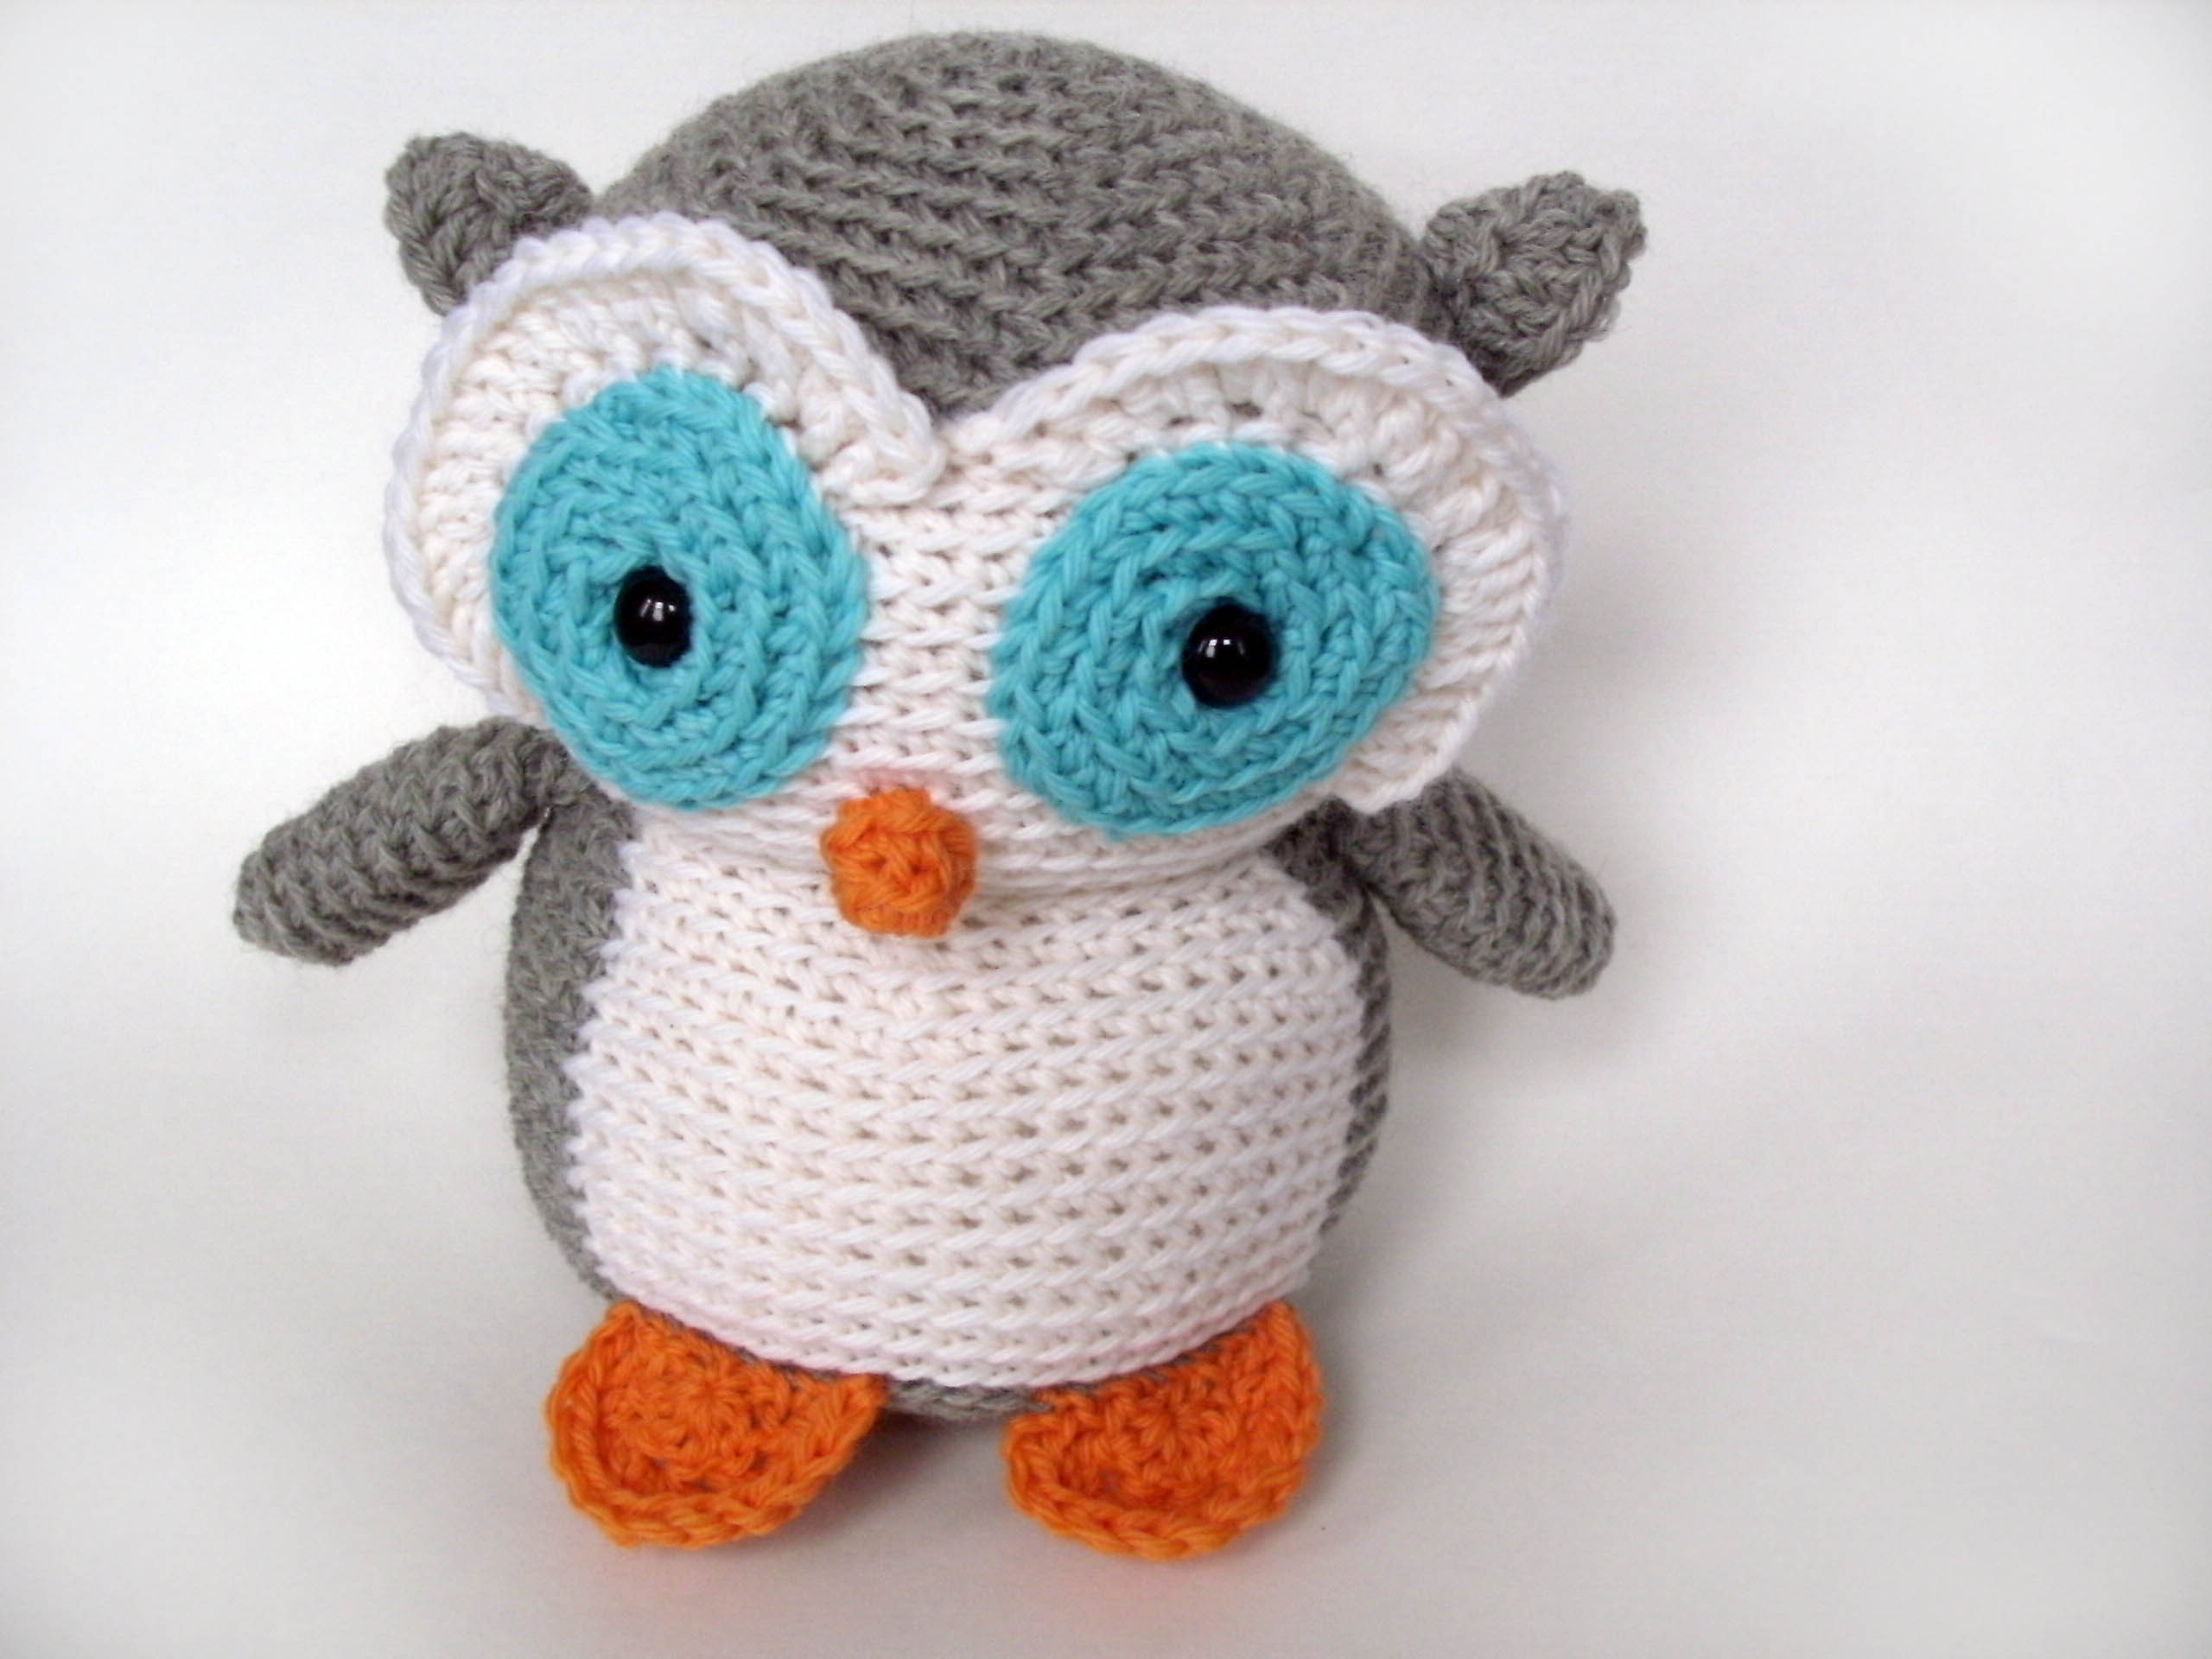 Crochet Animal Patterns Lovely A Shortcut for Crocheting Stuffed Animals More Quickly Of Incredible 48 Images Crochet Animal Patterns